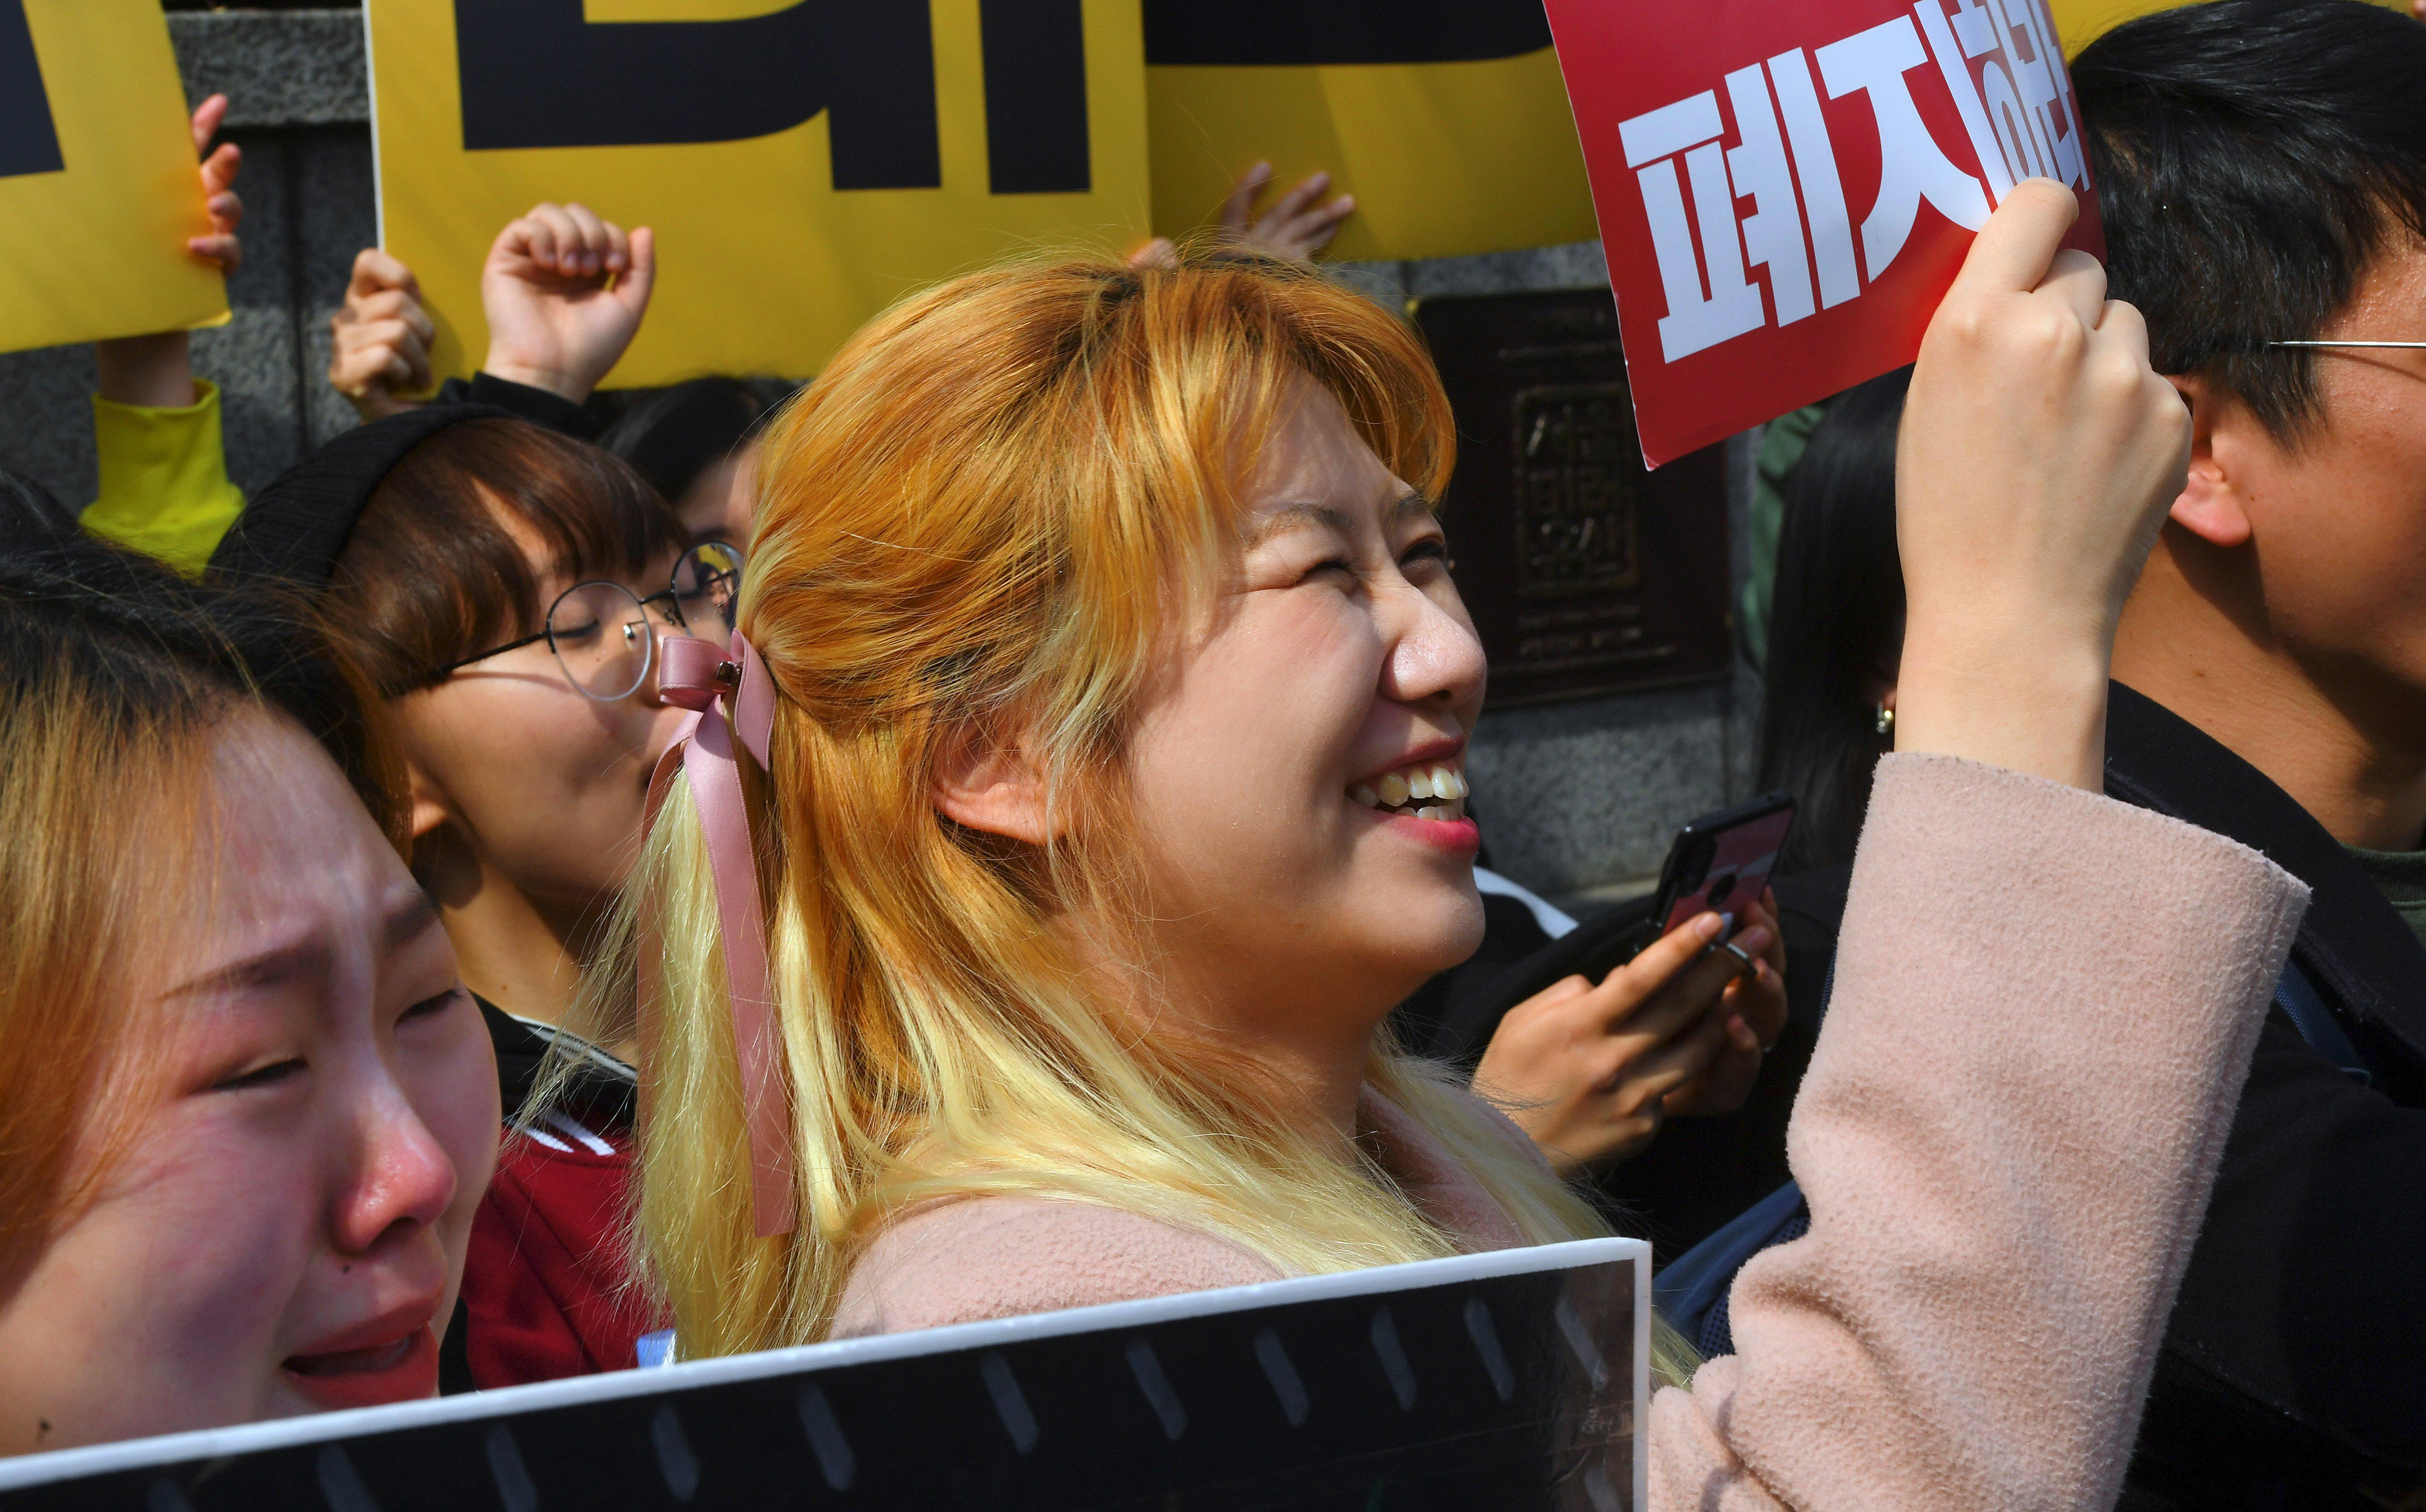 South Korean women hold up banners to protest anti-abortion legislation.